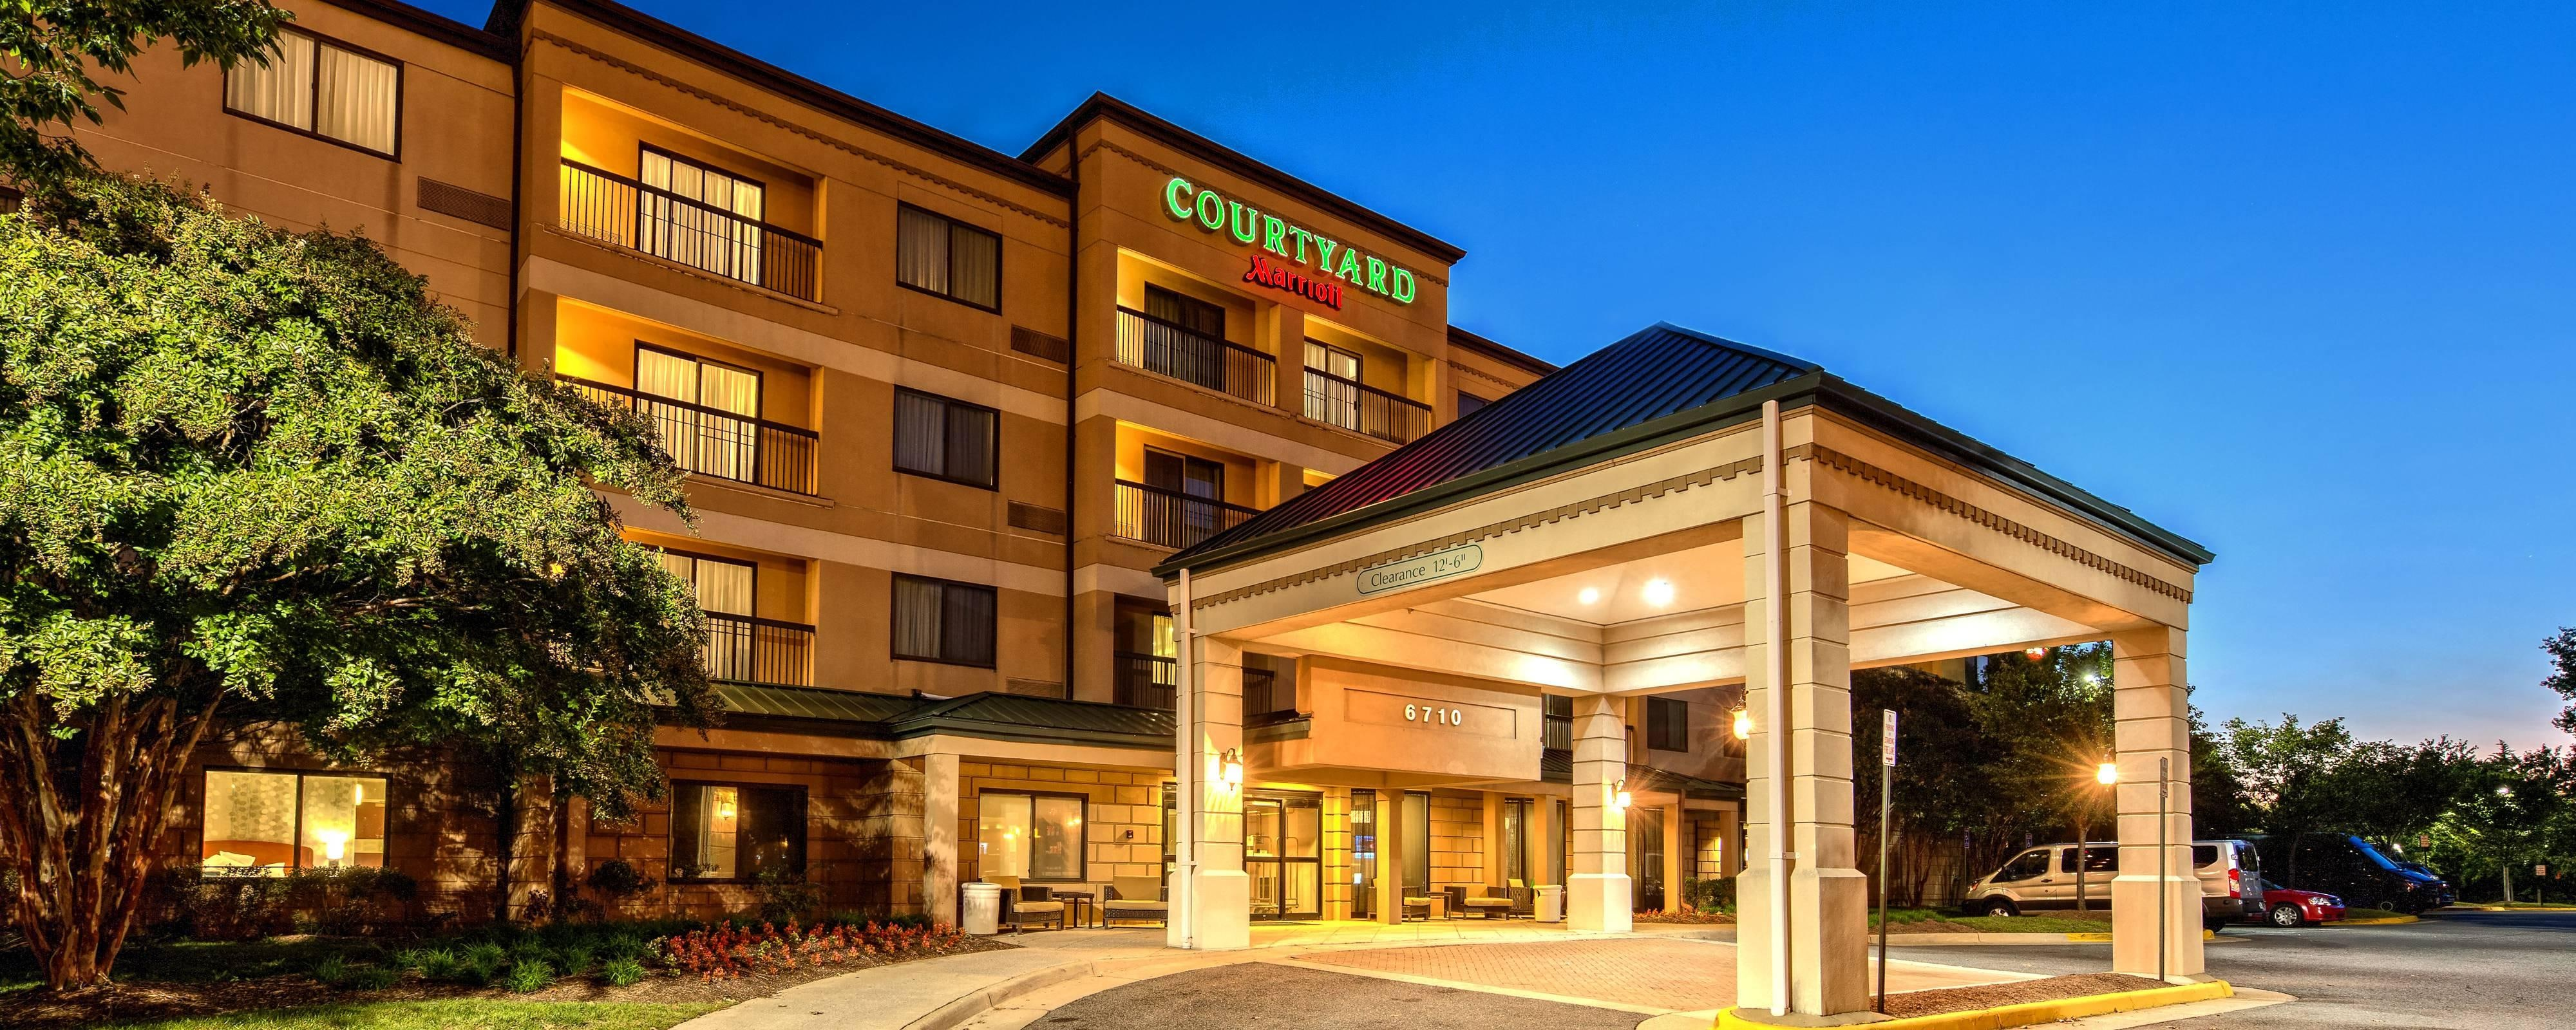 Courtyard by Marriott Springfield, Virginia: Home Page